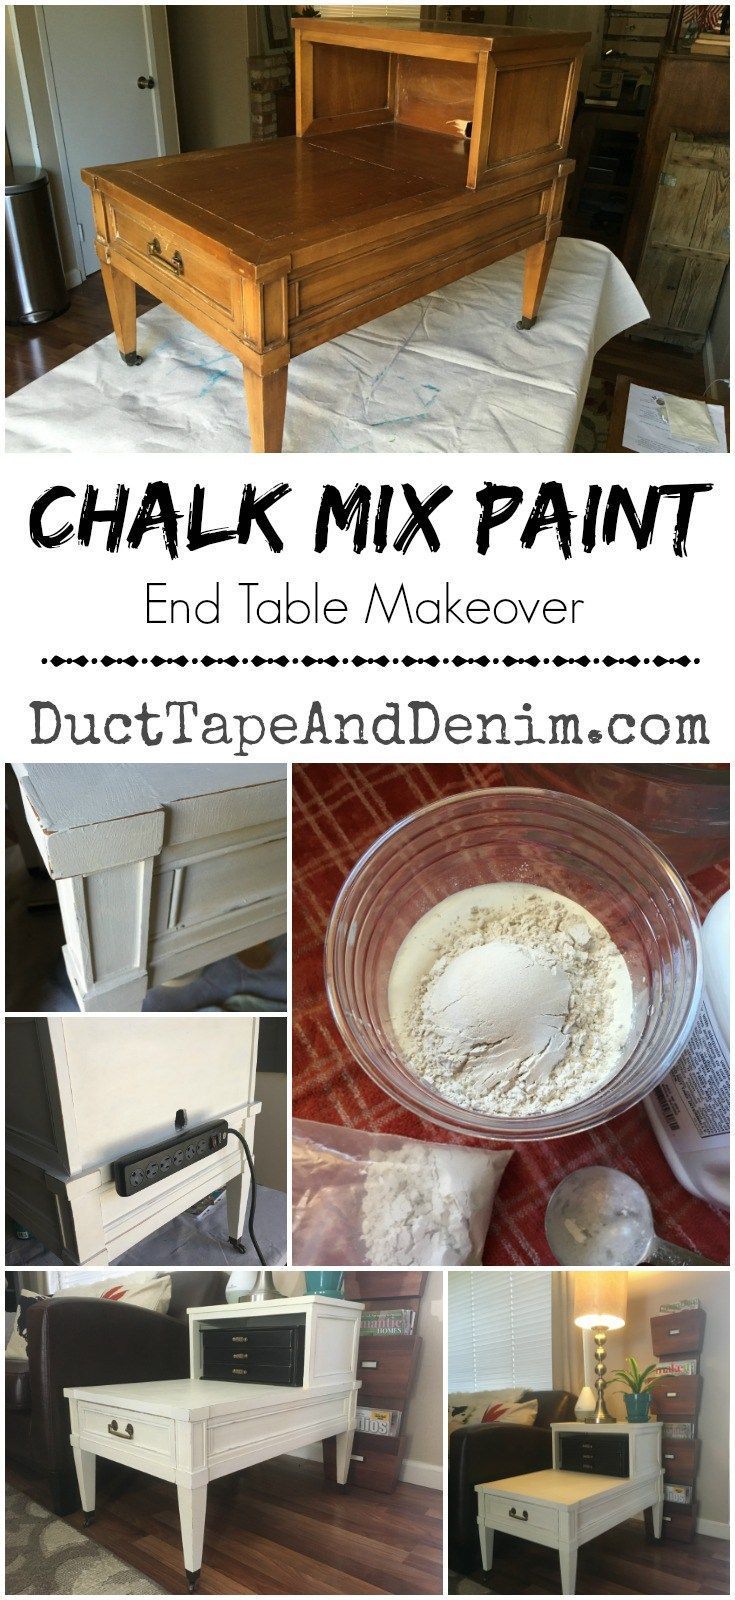 Chalk mix paint end table makeover | http://DuctTapeAndDenim.com